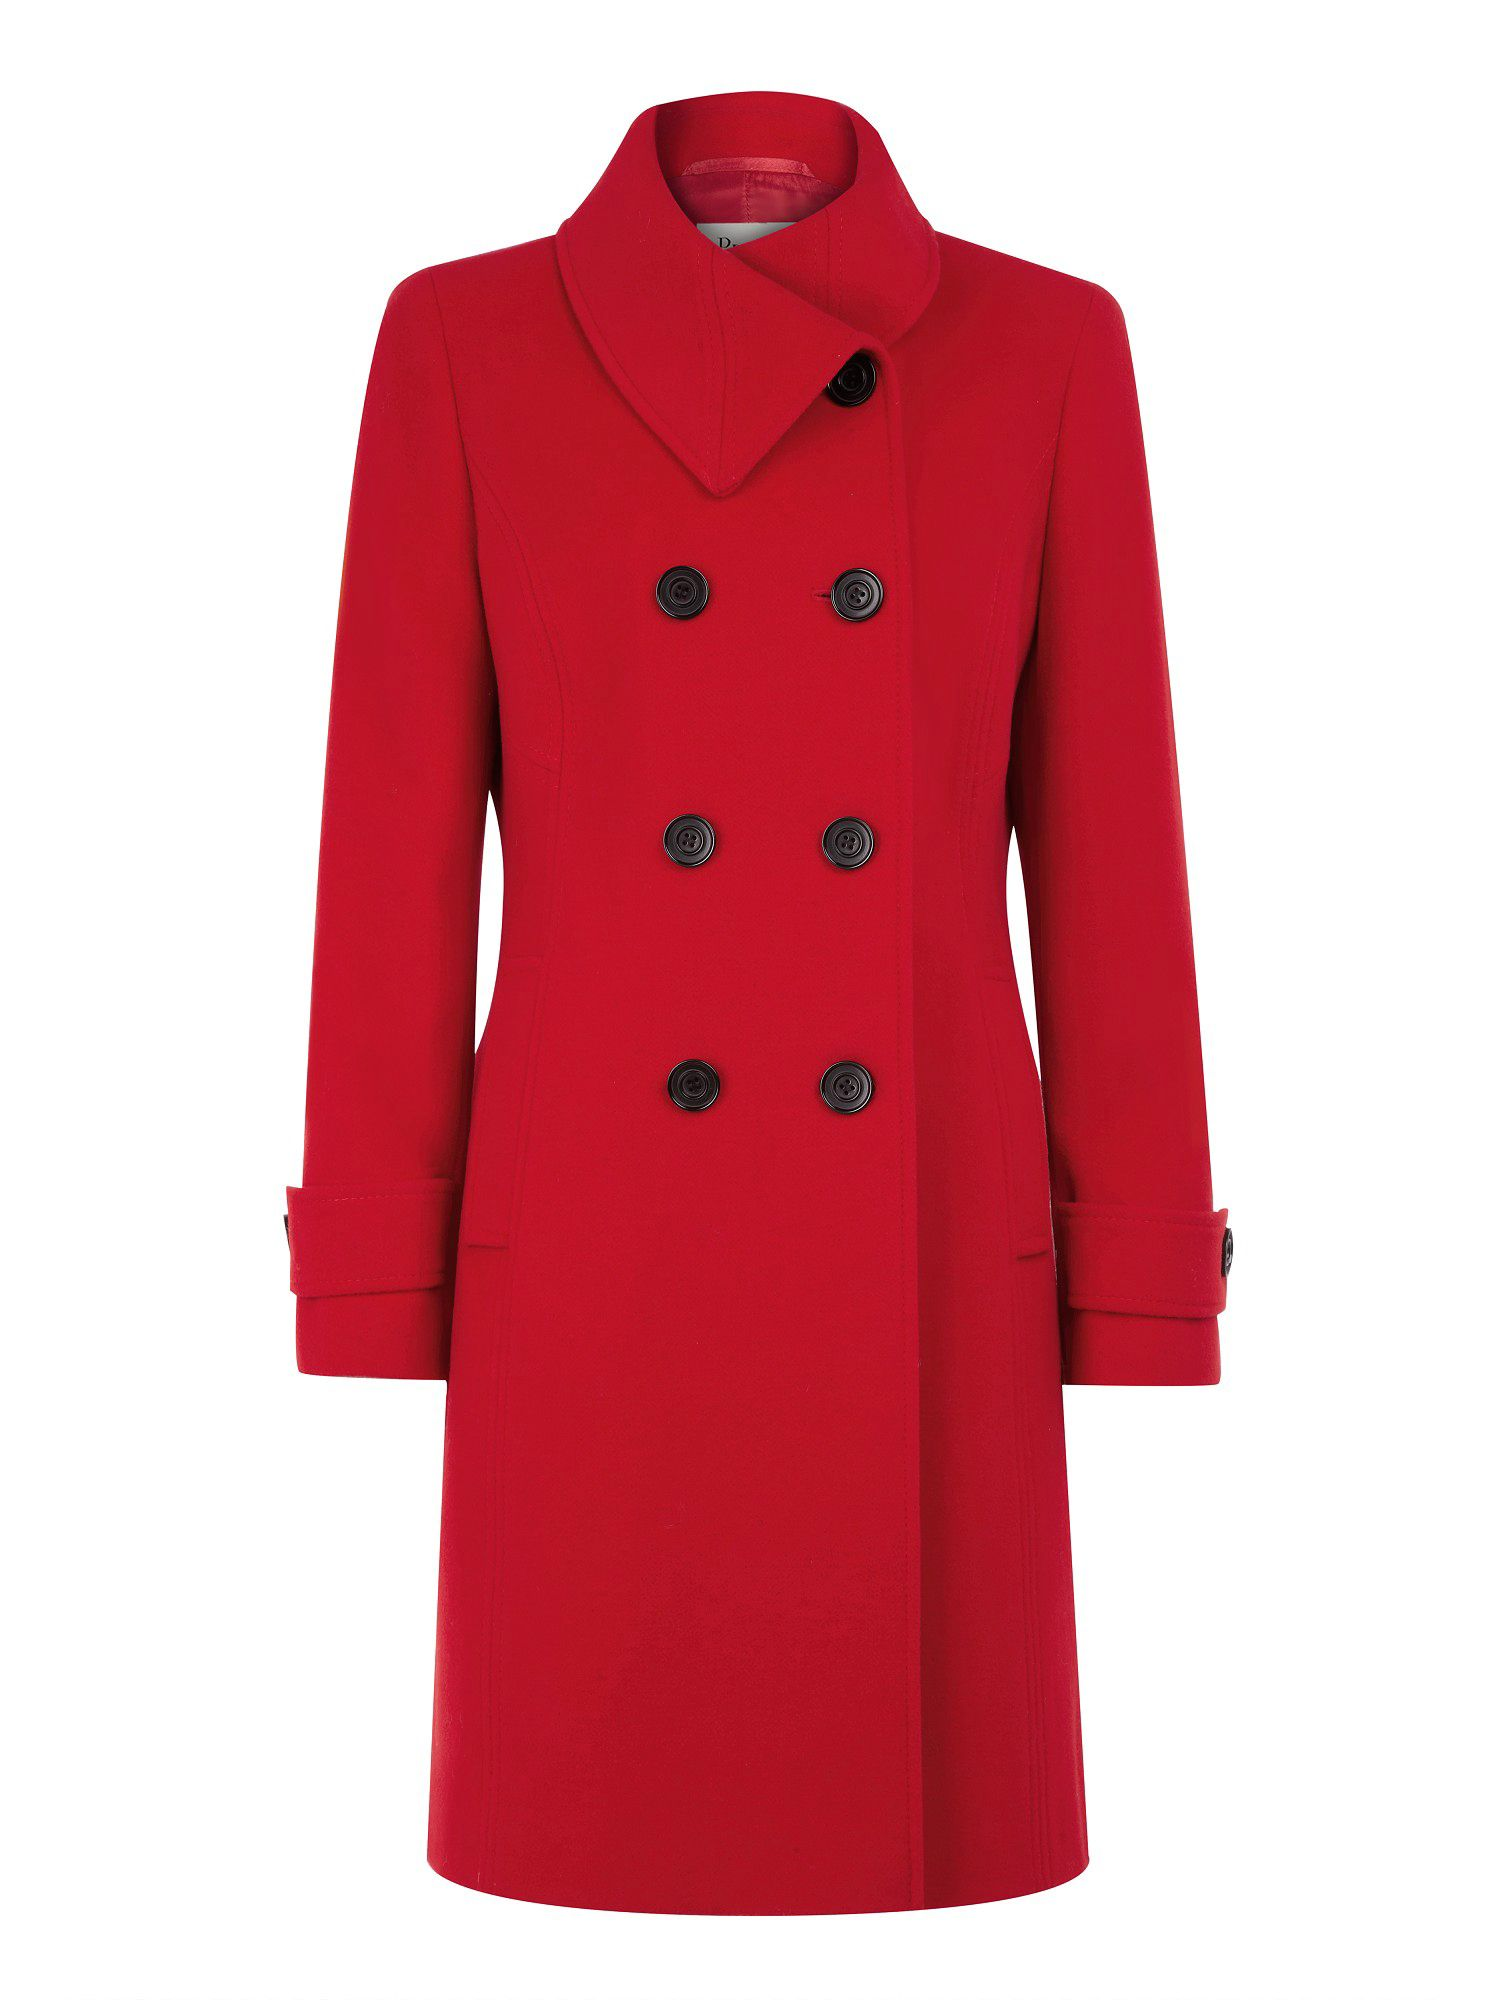 Red Coats For Women